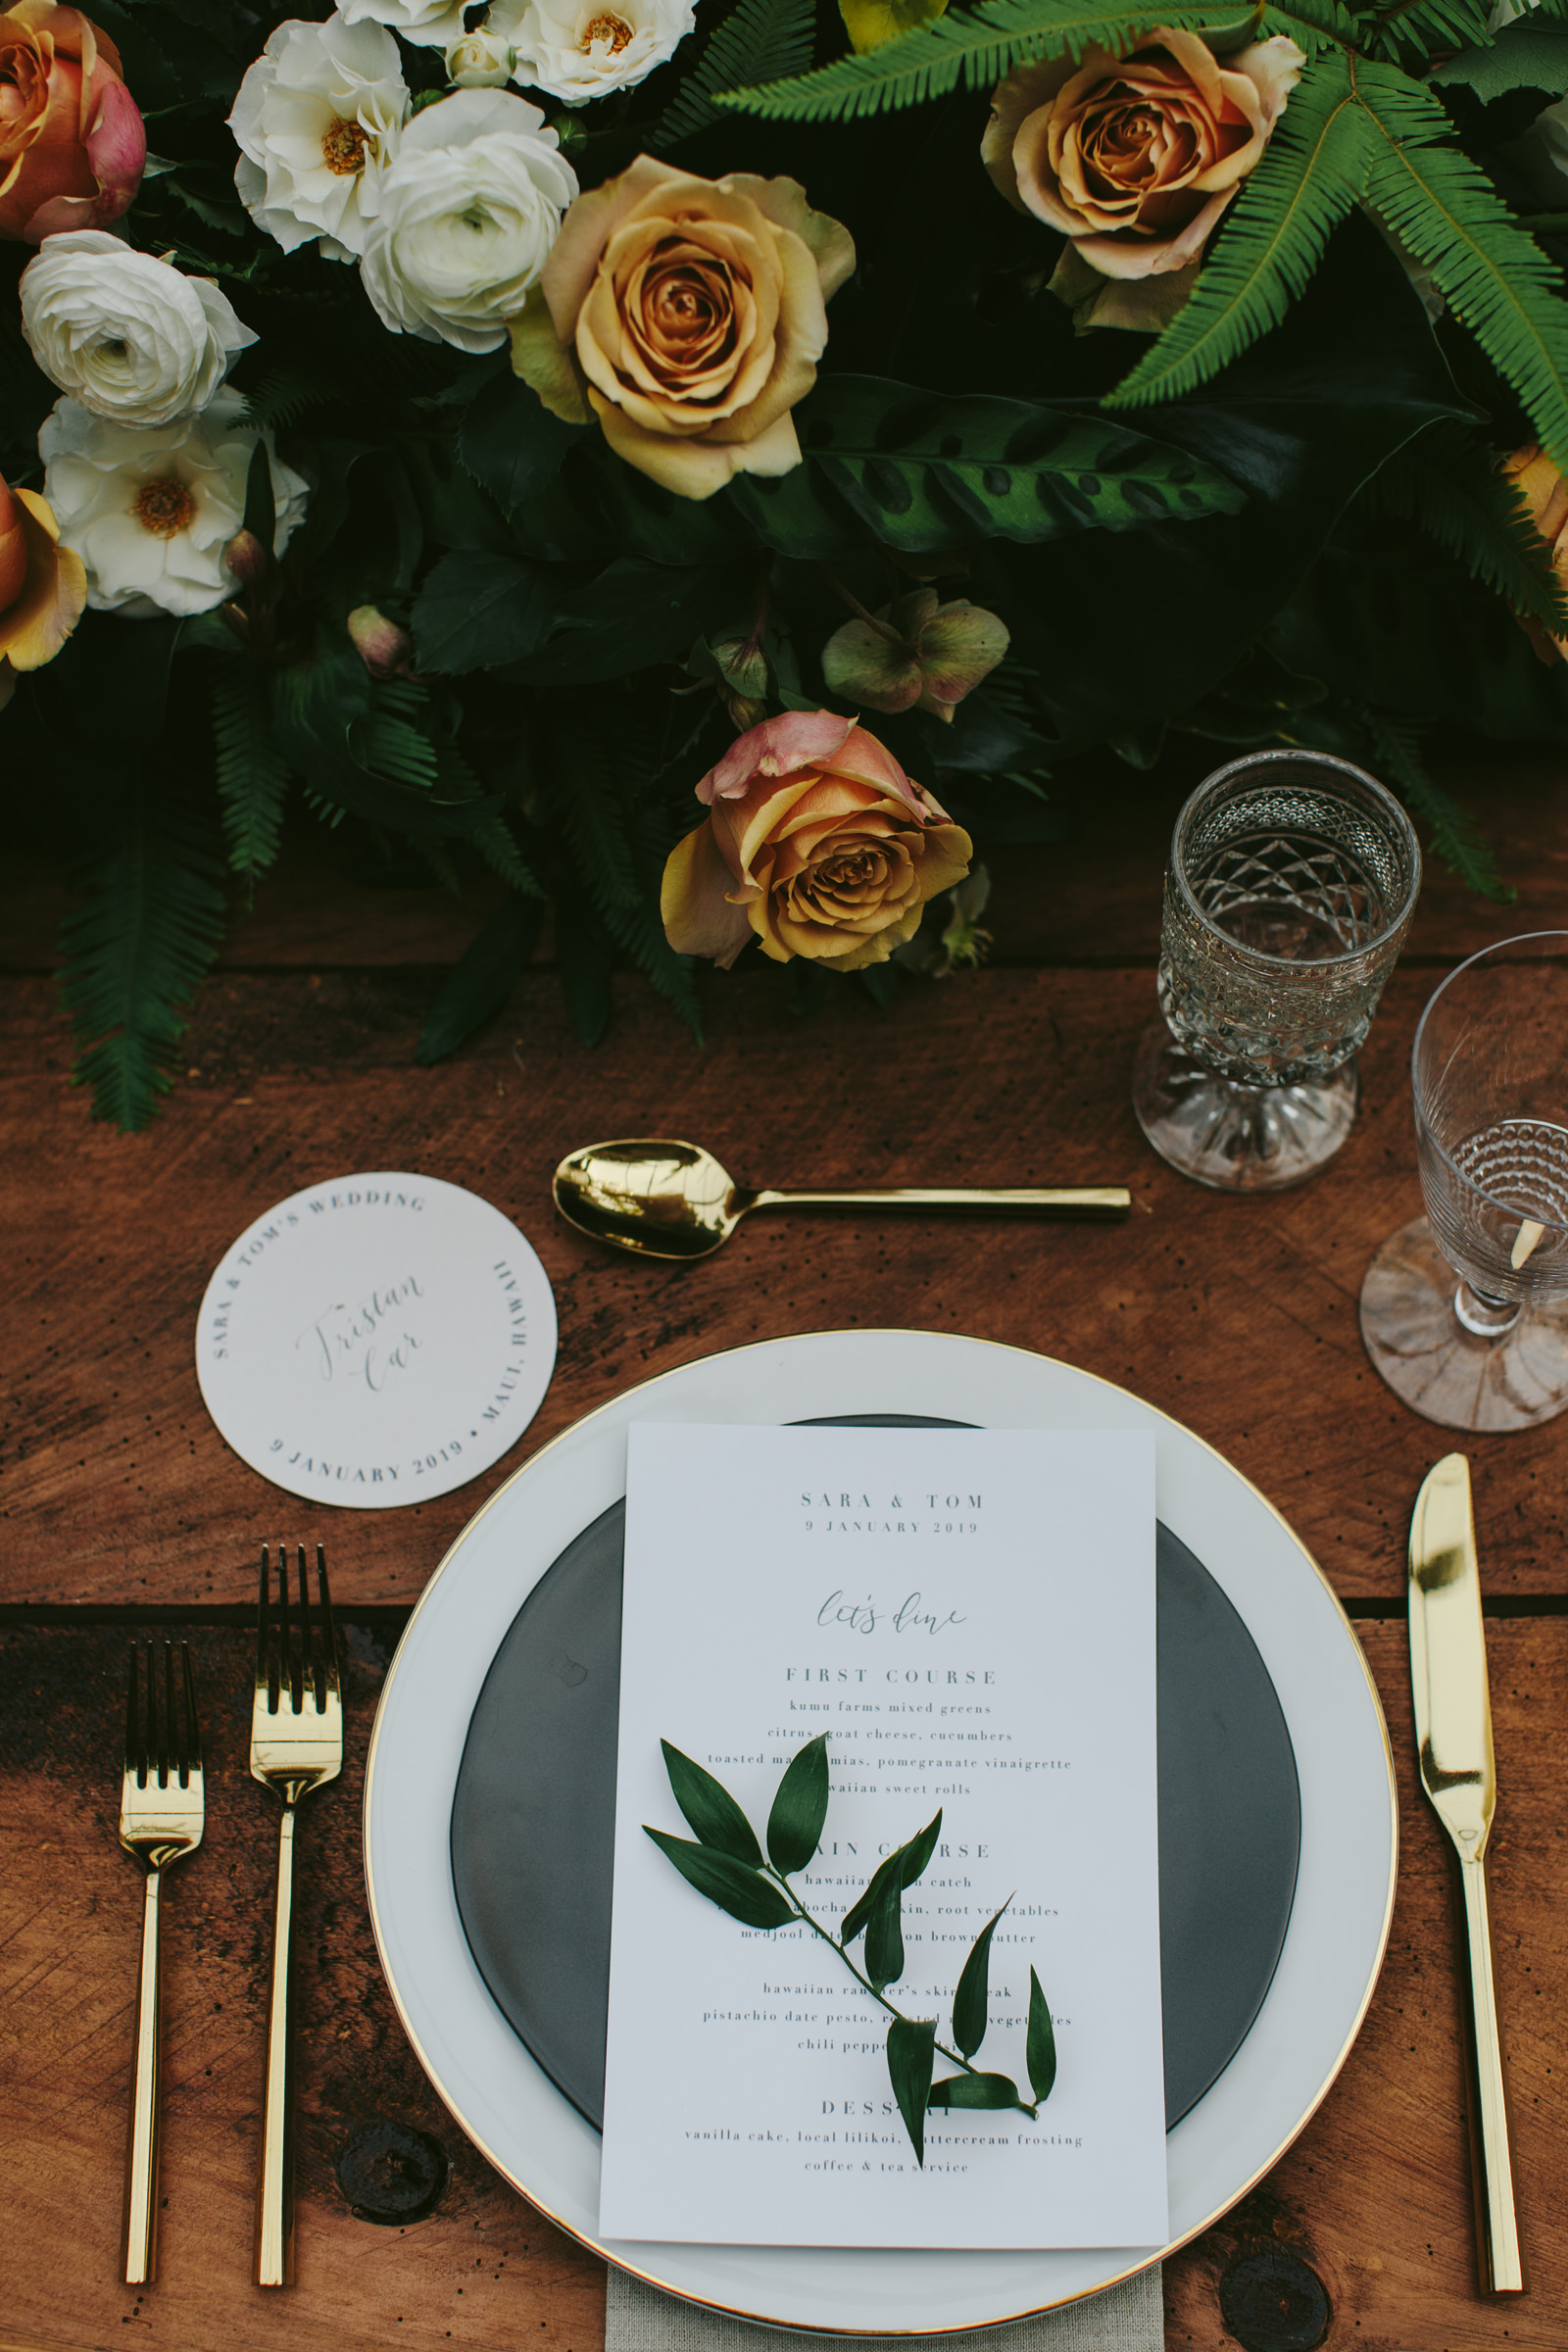 Haiku Mill maui detail to place setting with invitation and floral decor - photo by Melia Lucida